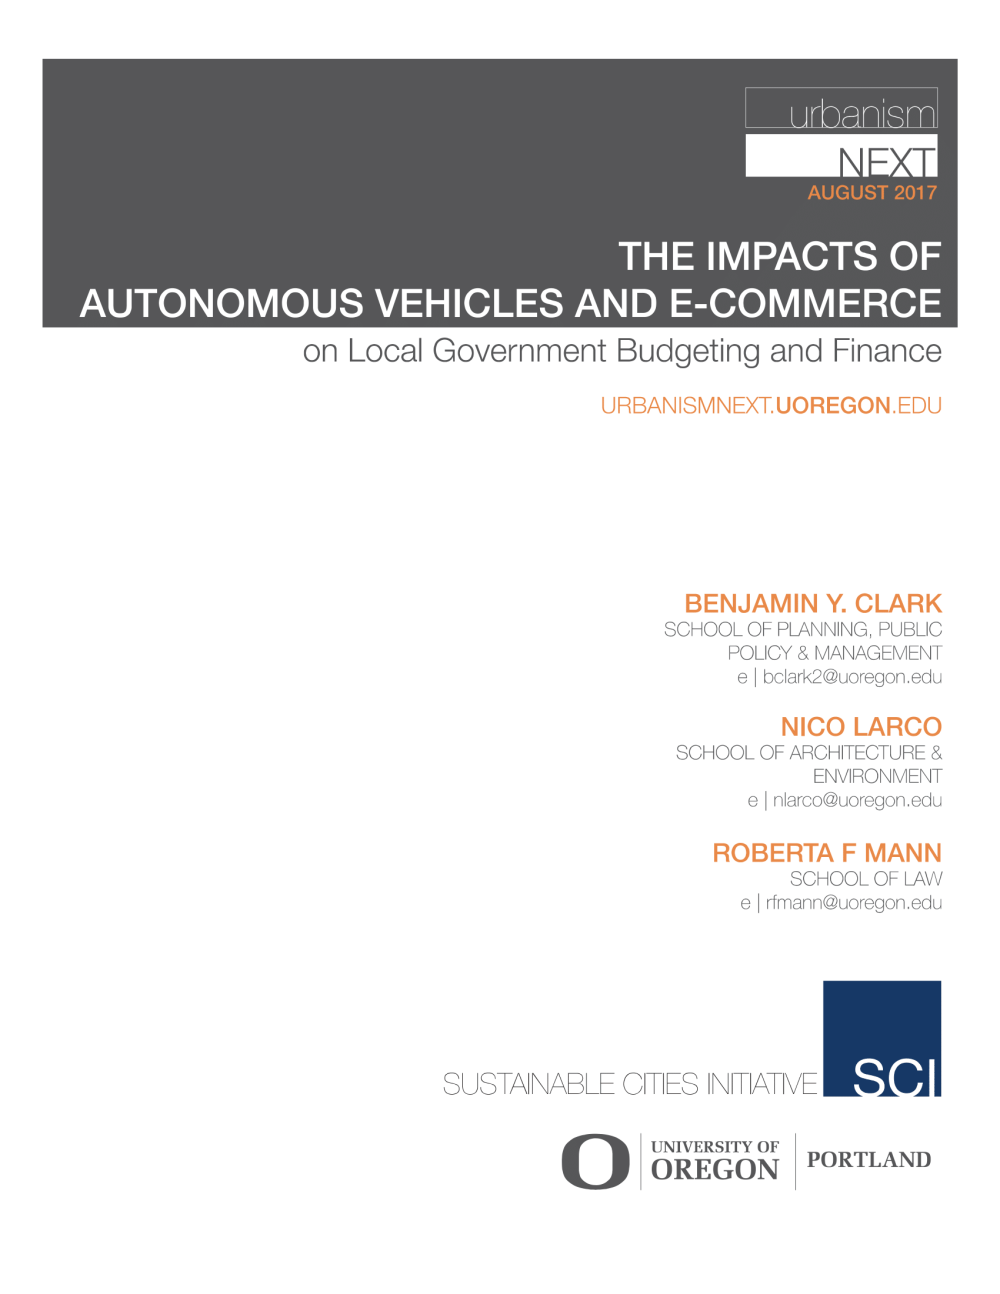 The Impacts of Autonomous Vehicles and E-commerce on Local Government Budgeting and Finance